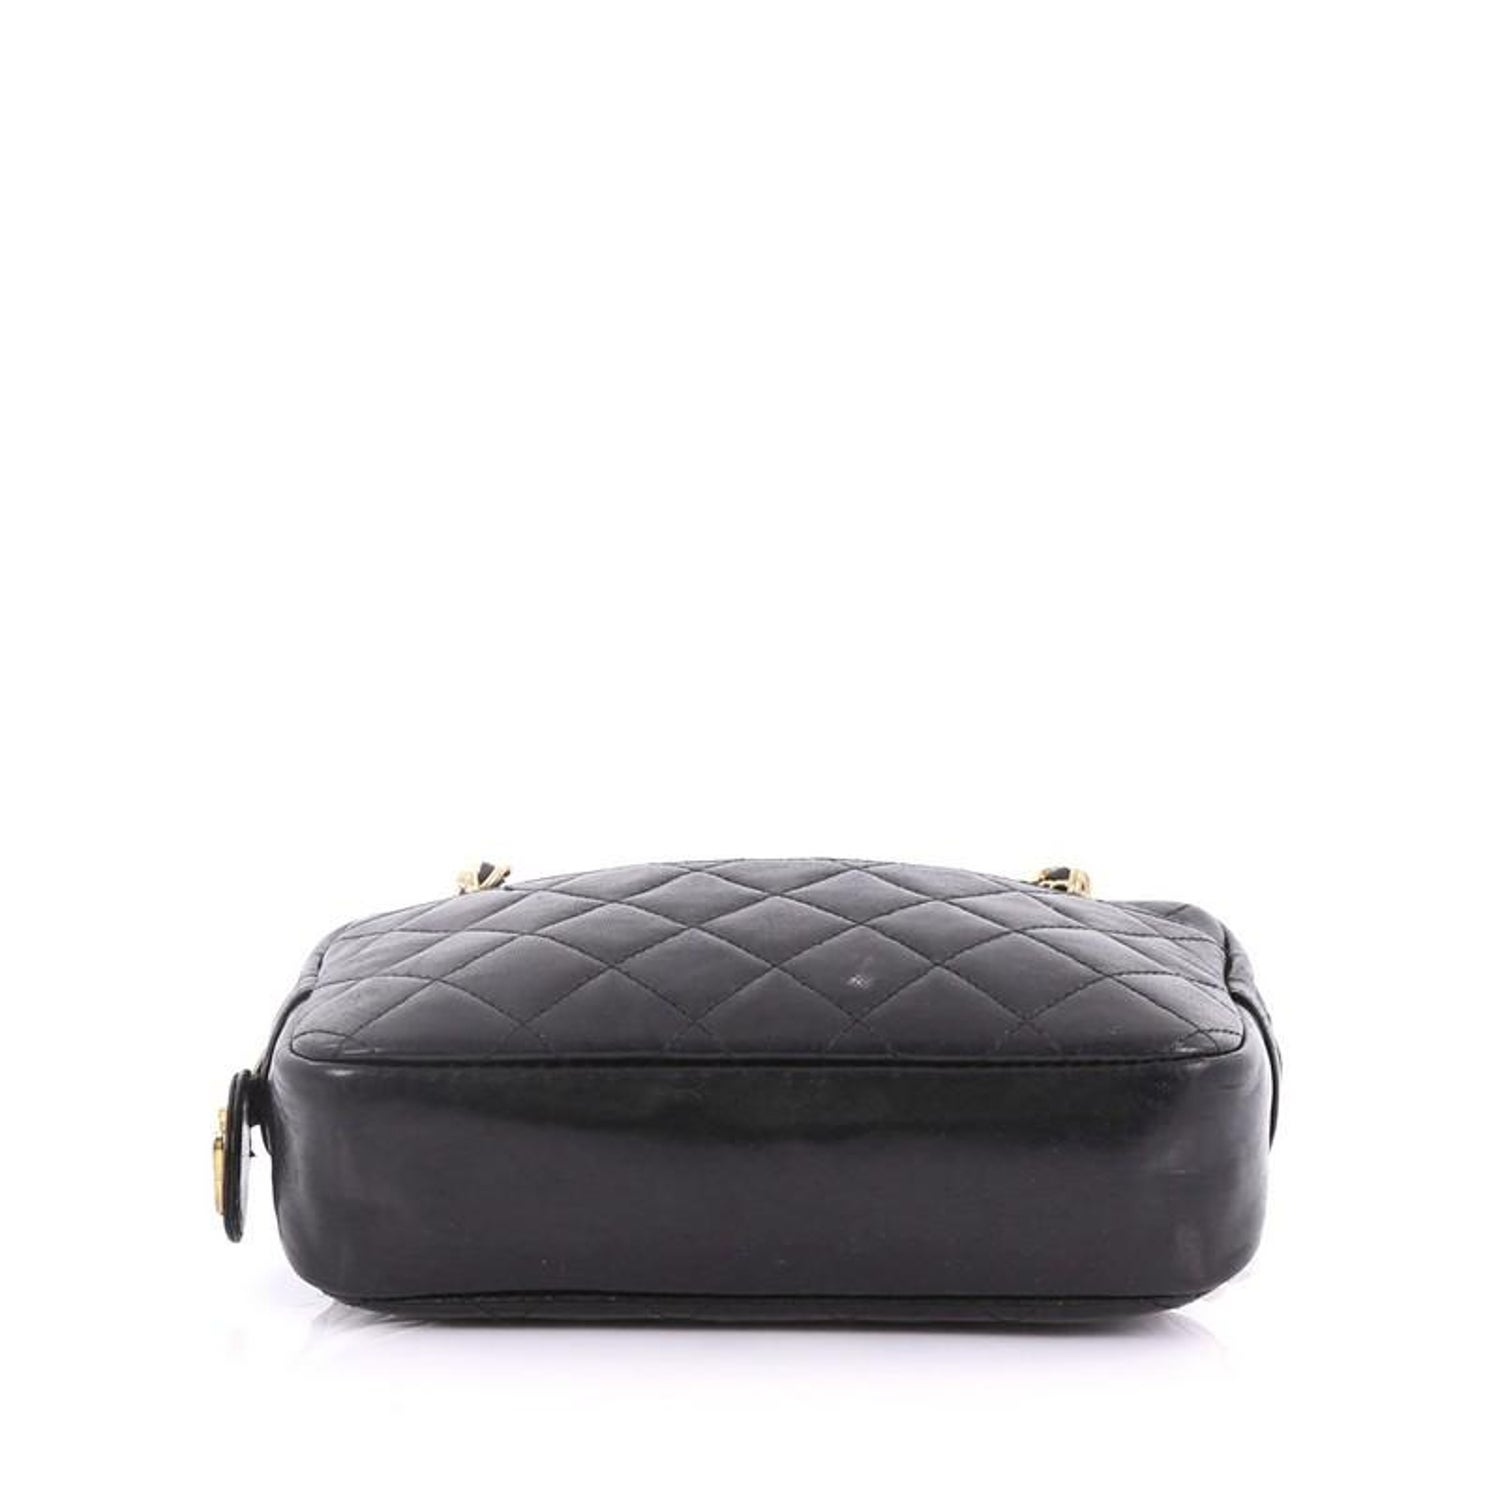 d4b057da704f Chanel Vintage Zip Chain Shoulder Bag Quilted Leather Small For Sale at  1stdibs